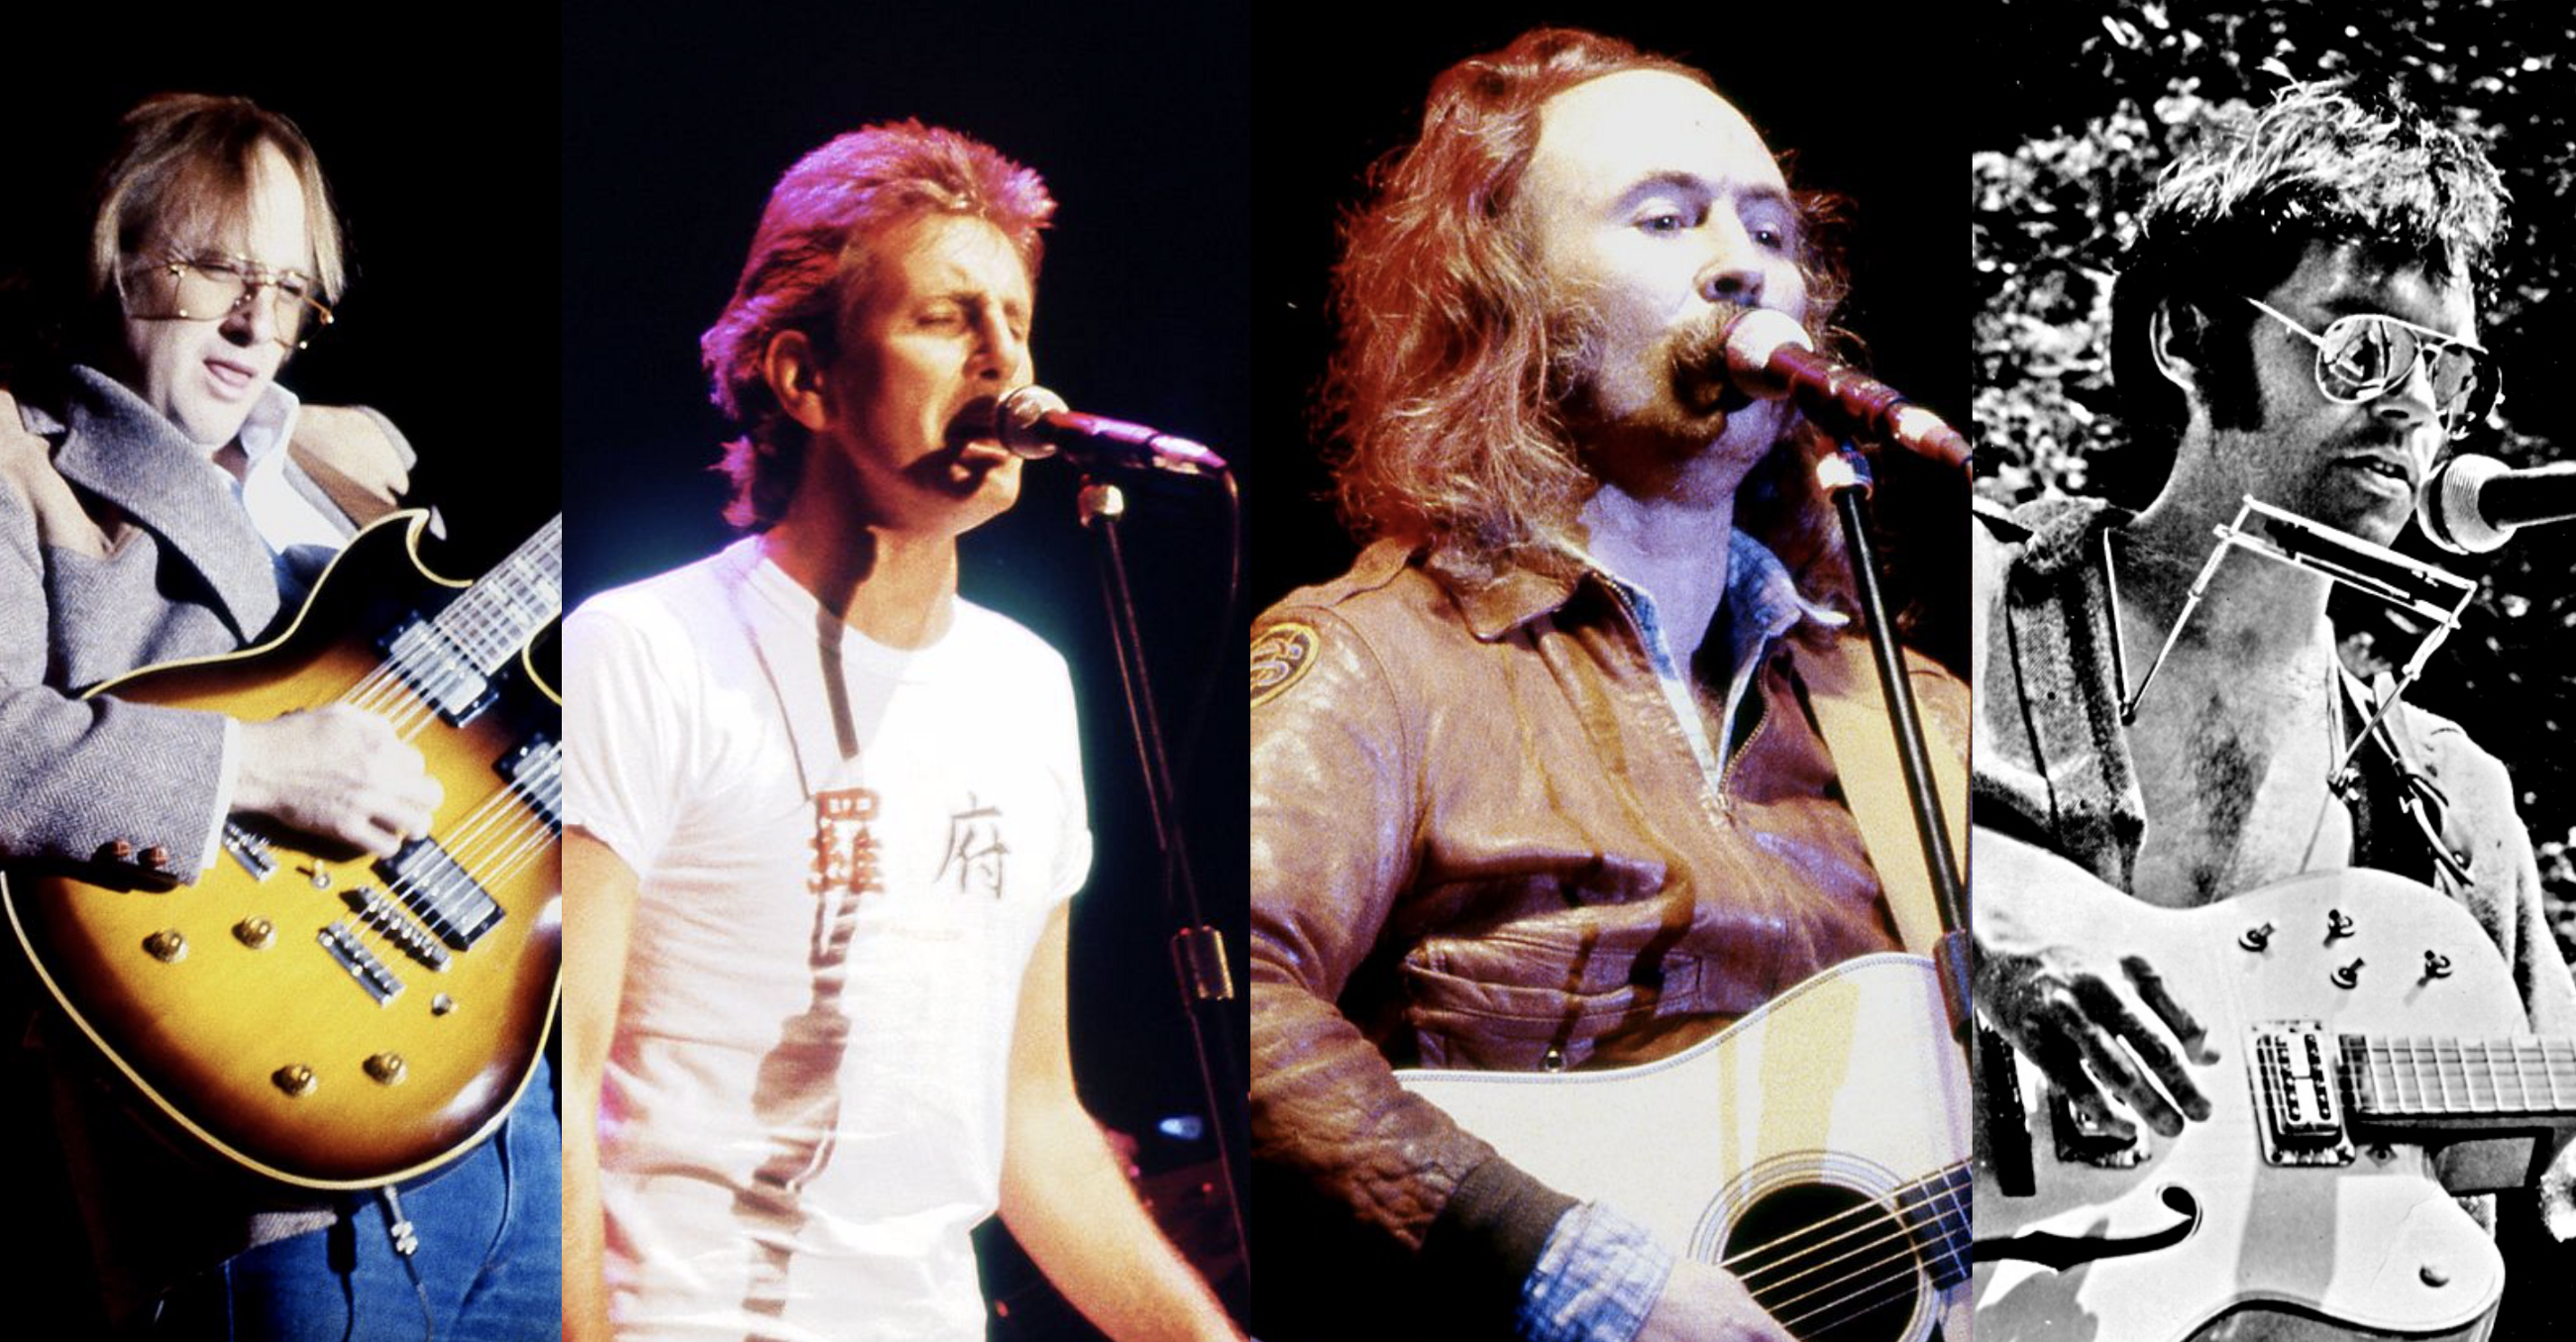 Over 50 Years of Crosby, Stills, Nash, & Young